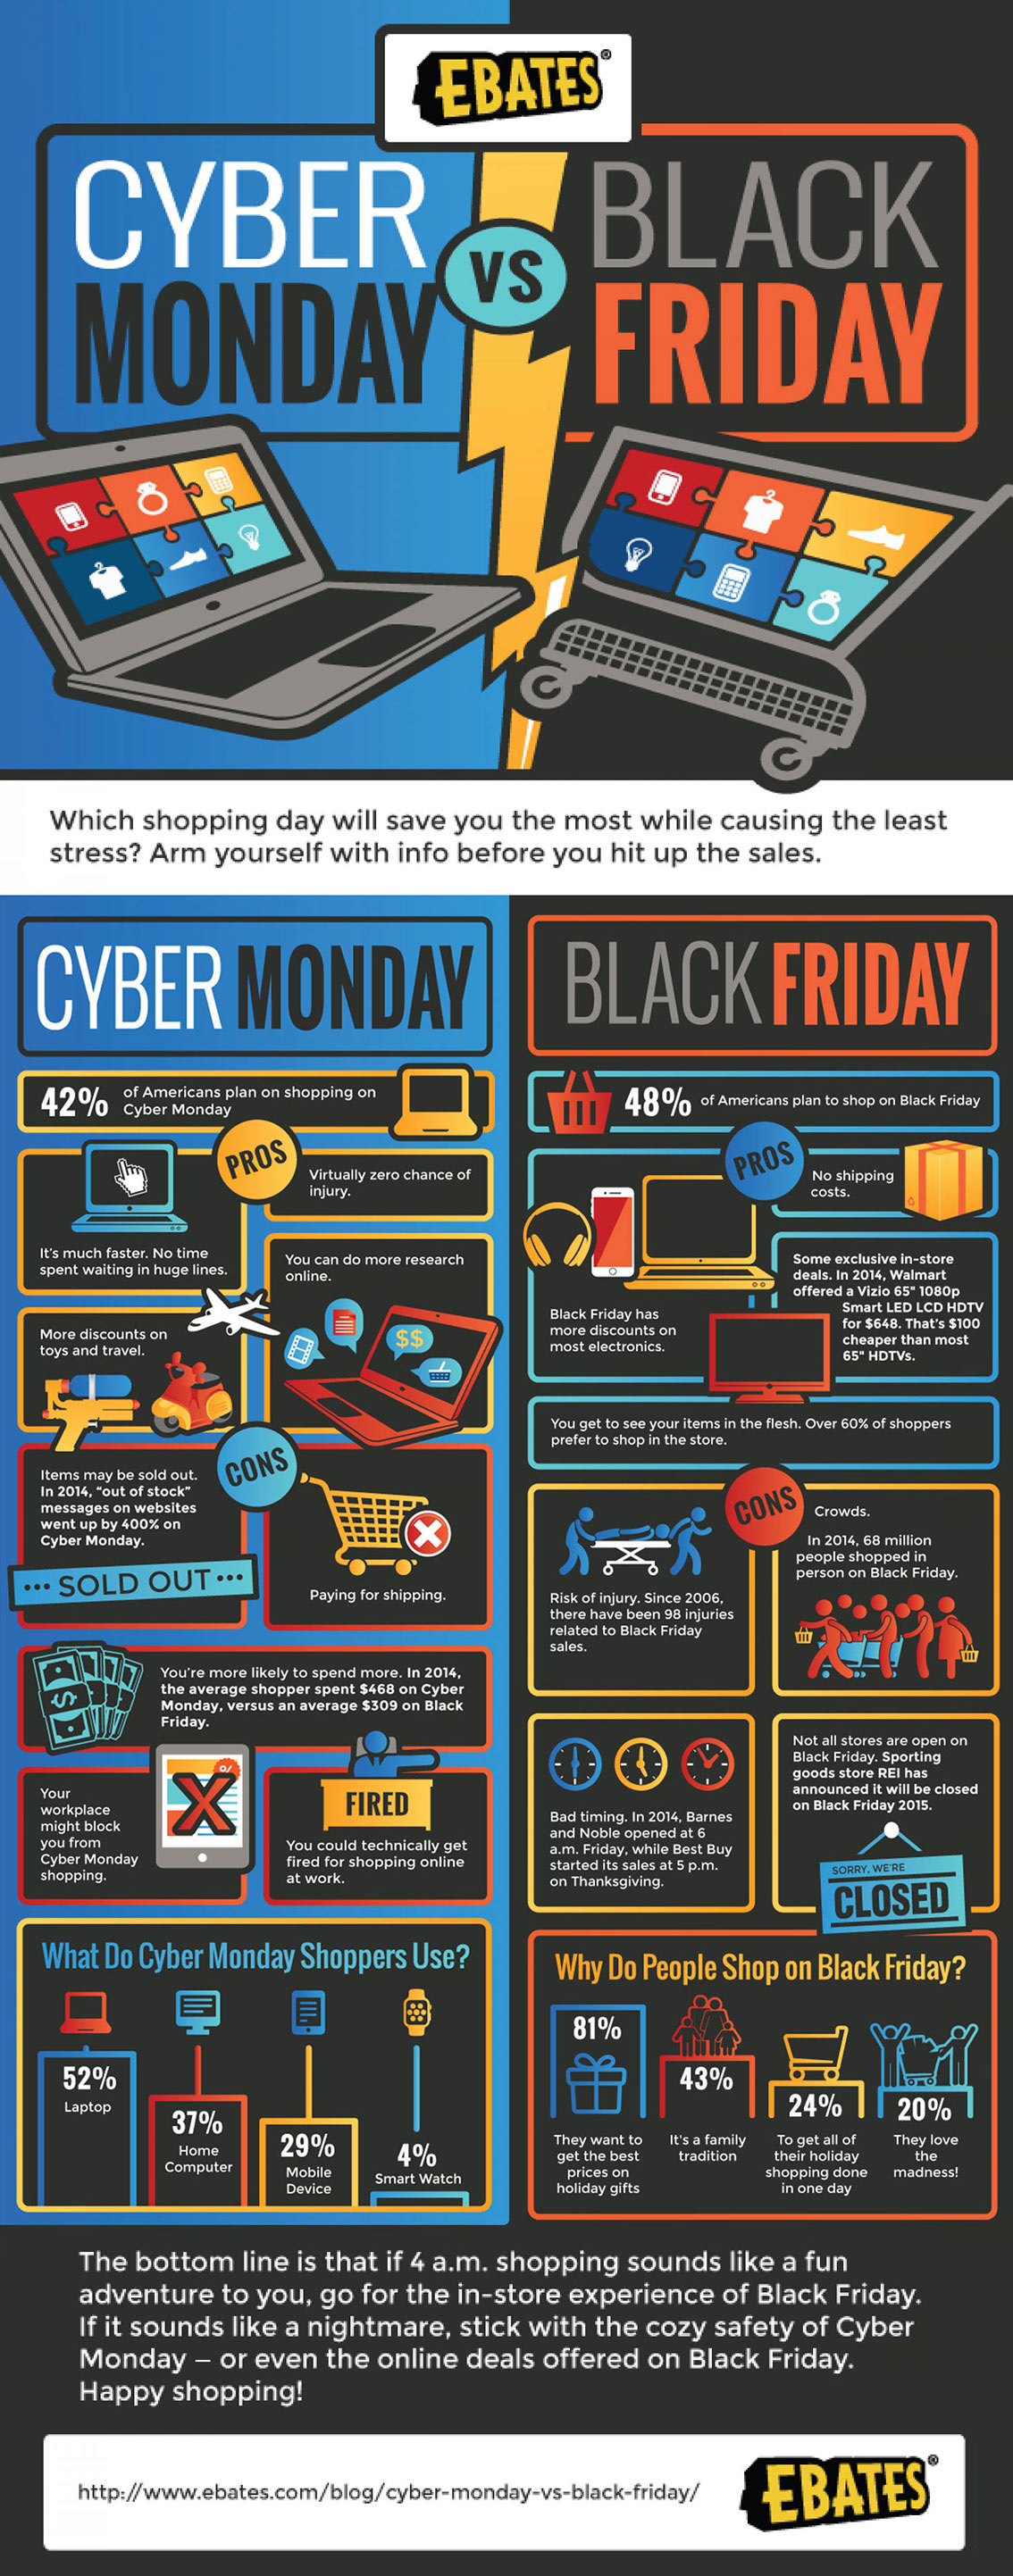 Cyber shopping deals today